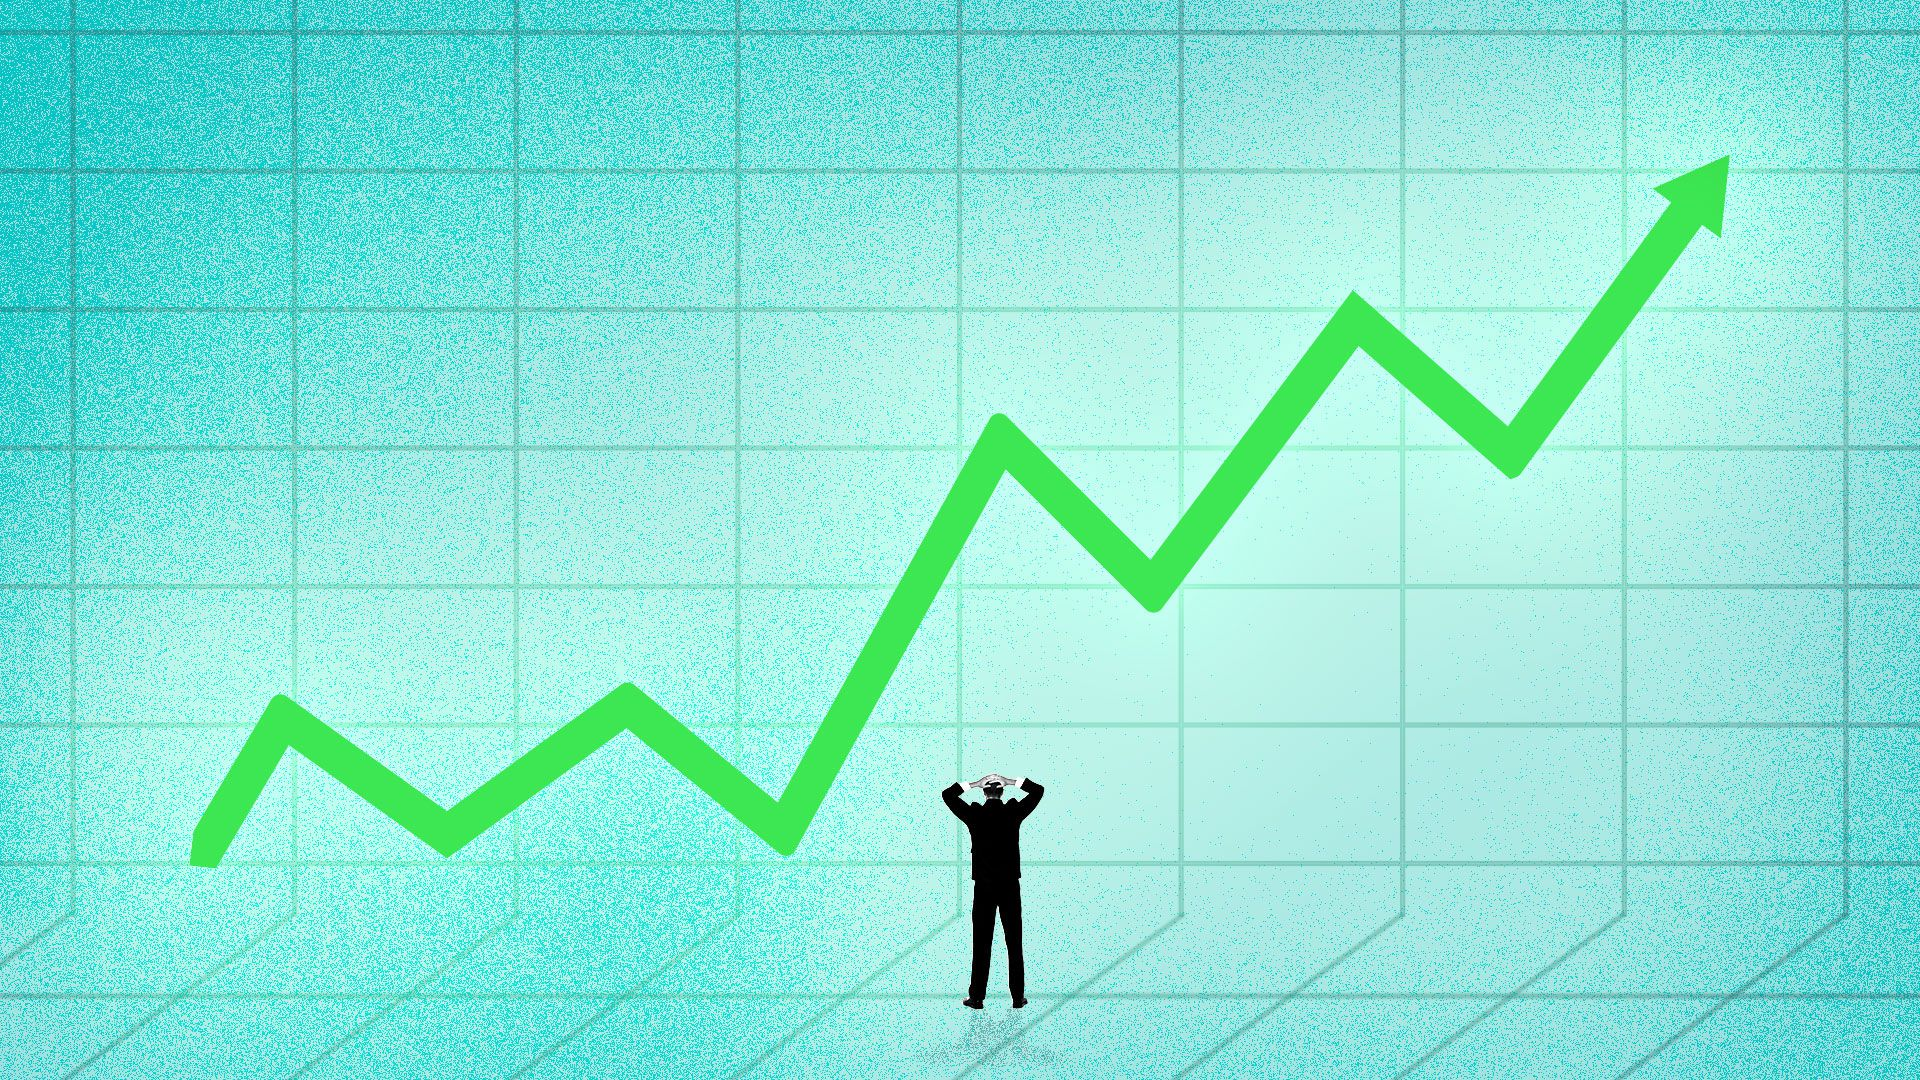 Illustration of a man looking exasperated at a glowing upward trend line.